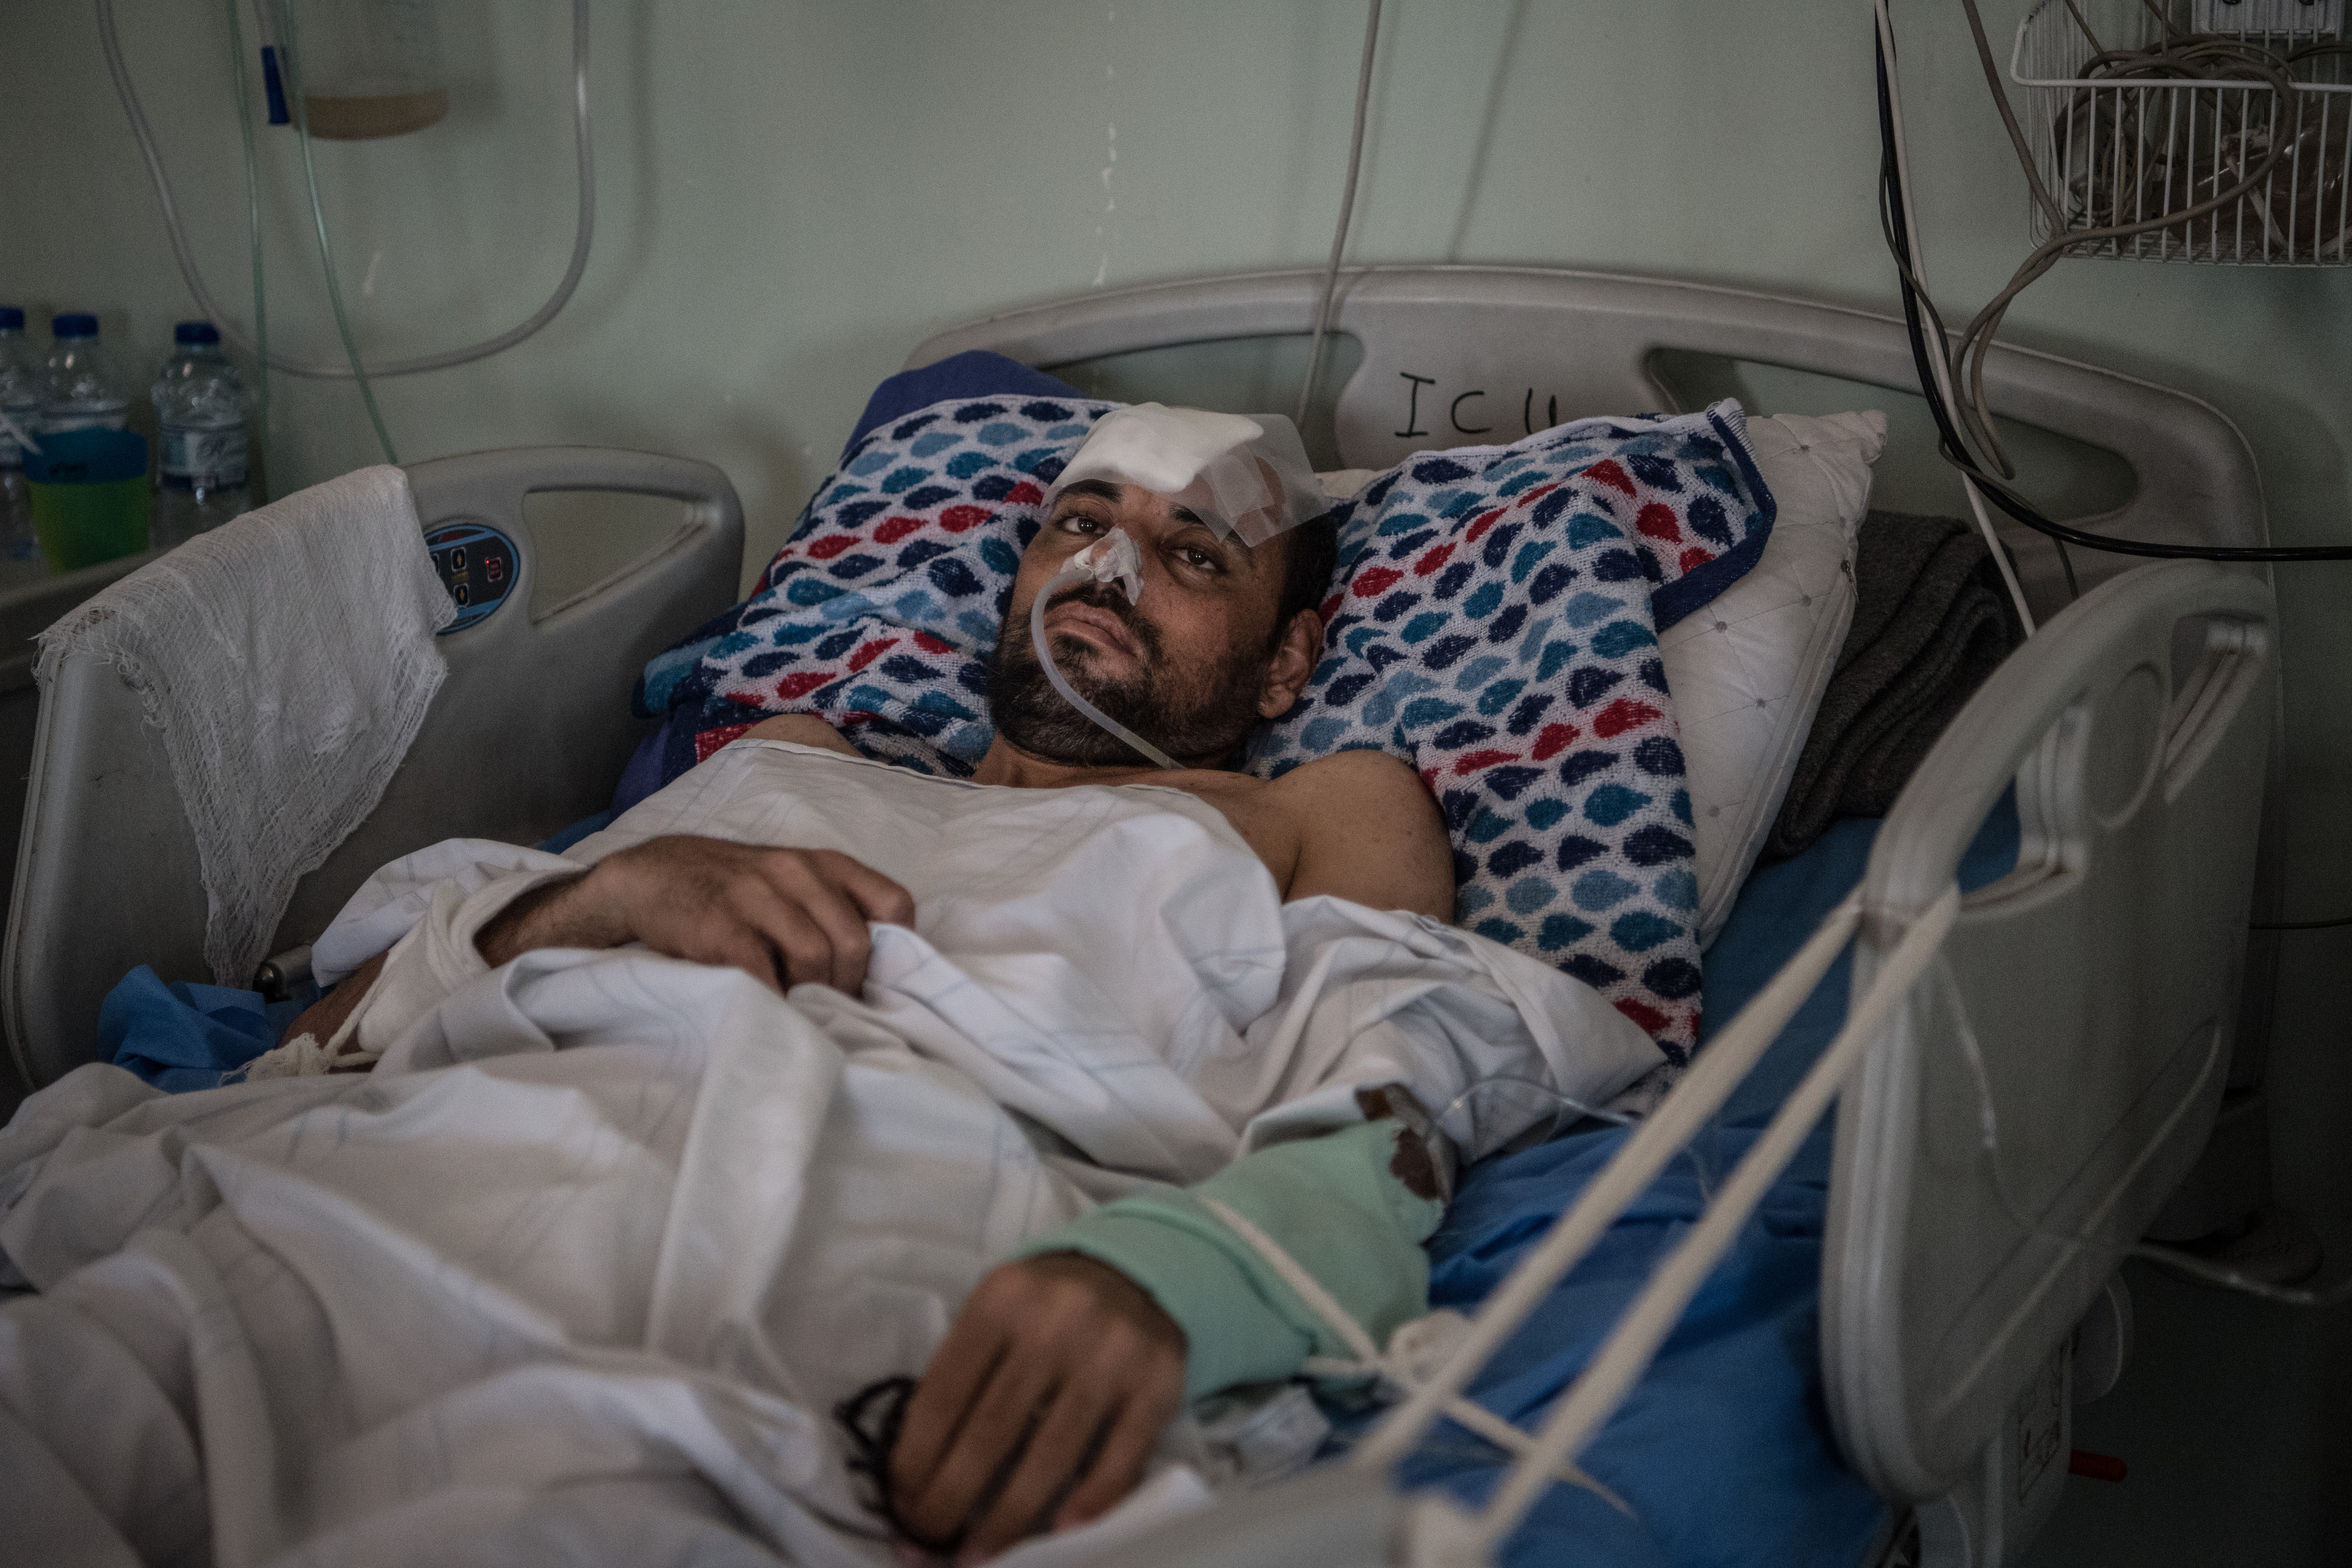 An Iraqi man received serious injuries after an April 2017 airstrike in Mosul, Iraq.